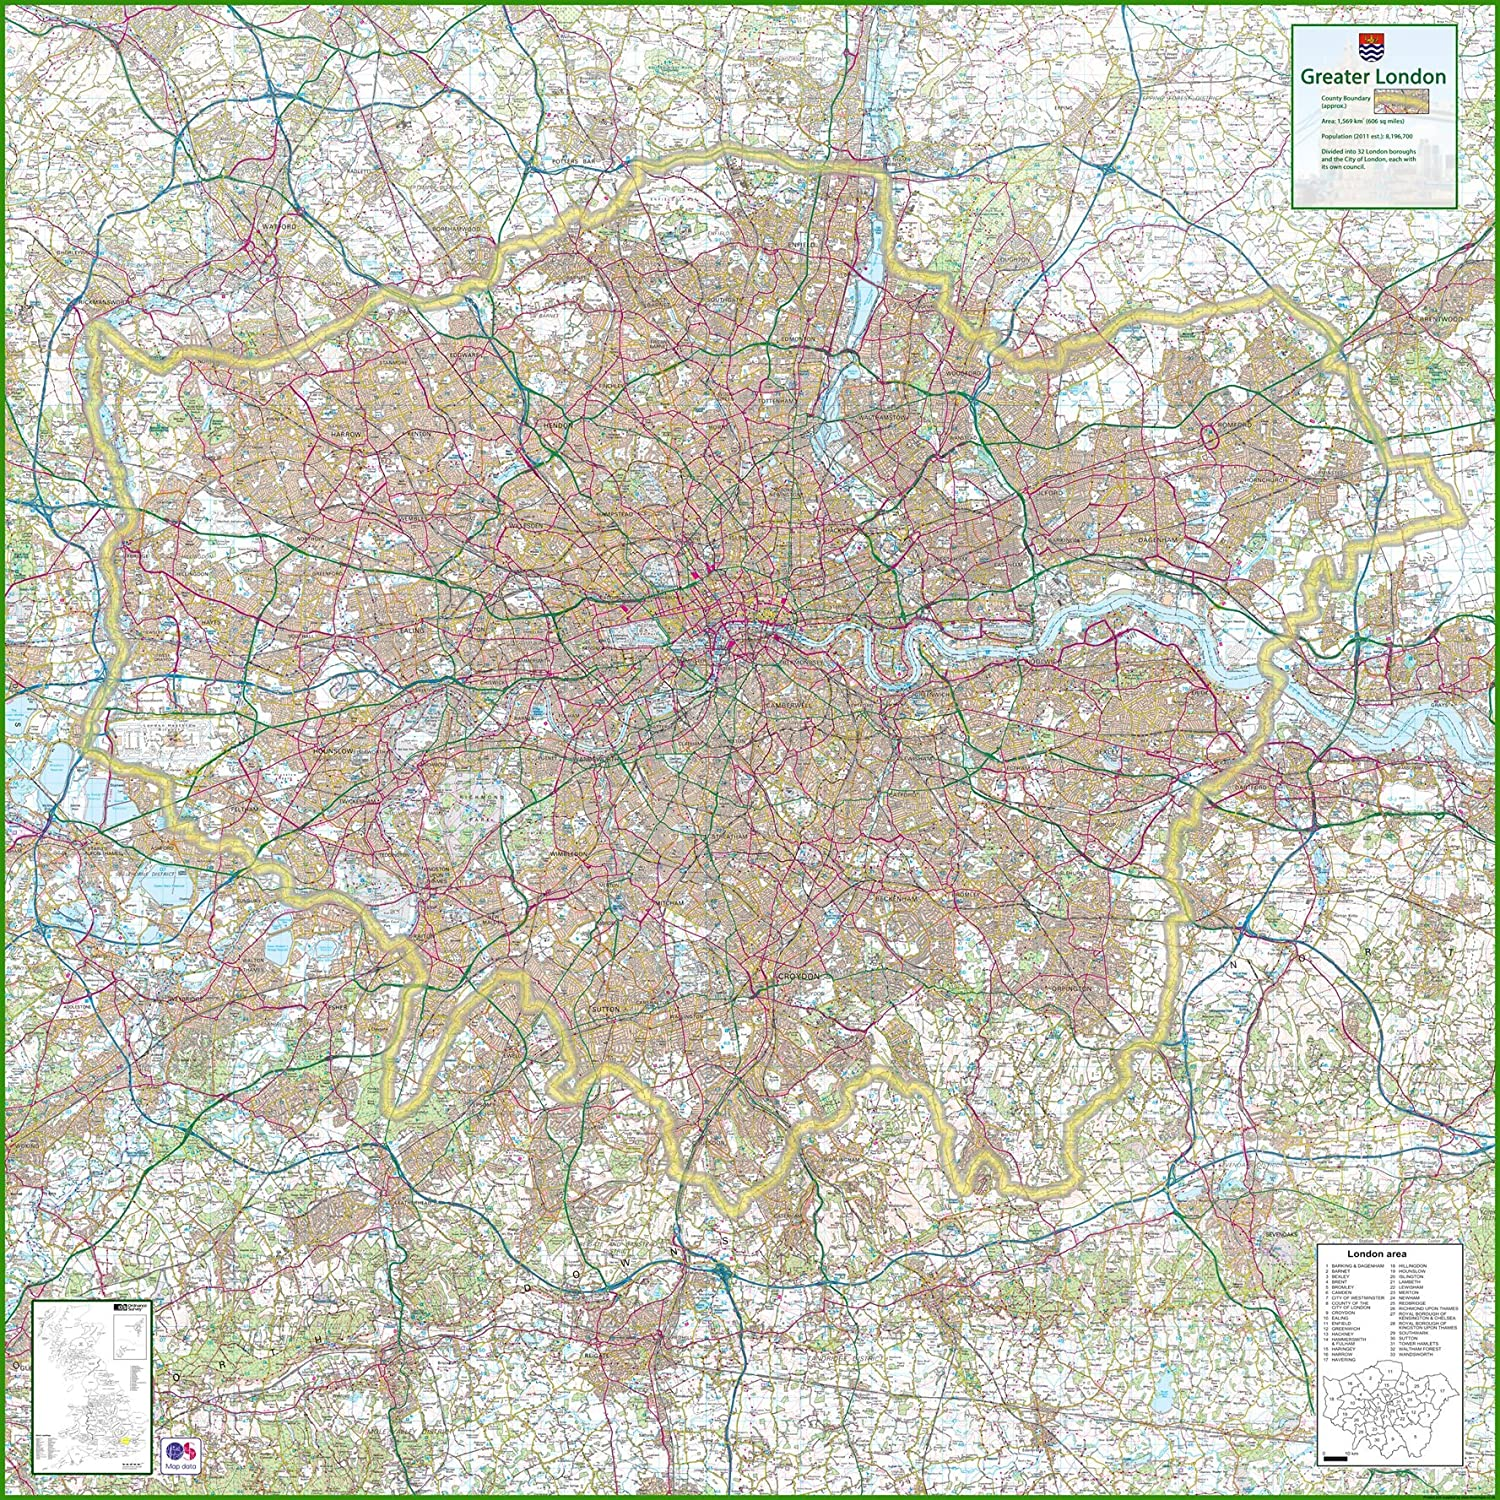 Map Of Greater London Area.Greater London Uk County Map 150 X 150 Cm Amazon Co Uk Office